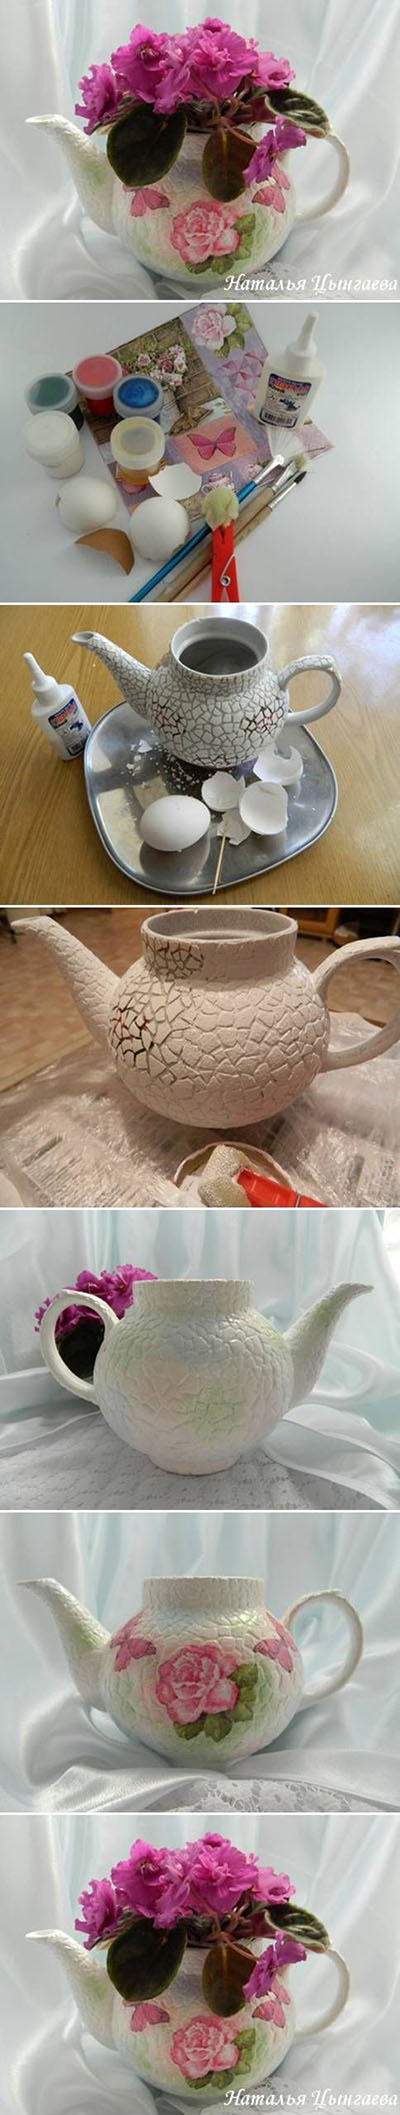 15 DIY Old Kettle Plant Pot with Eggshells c82aab